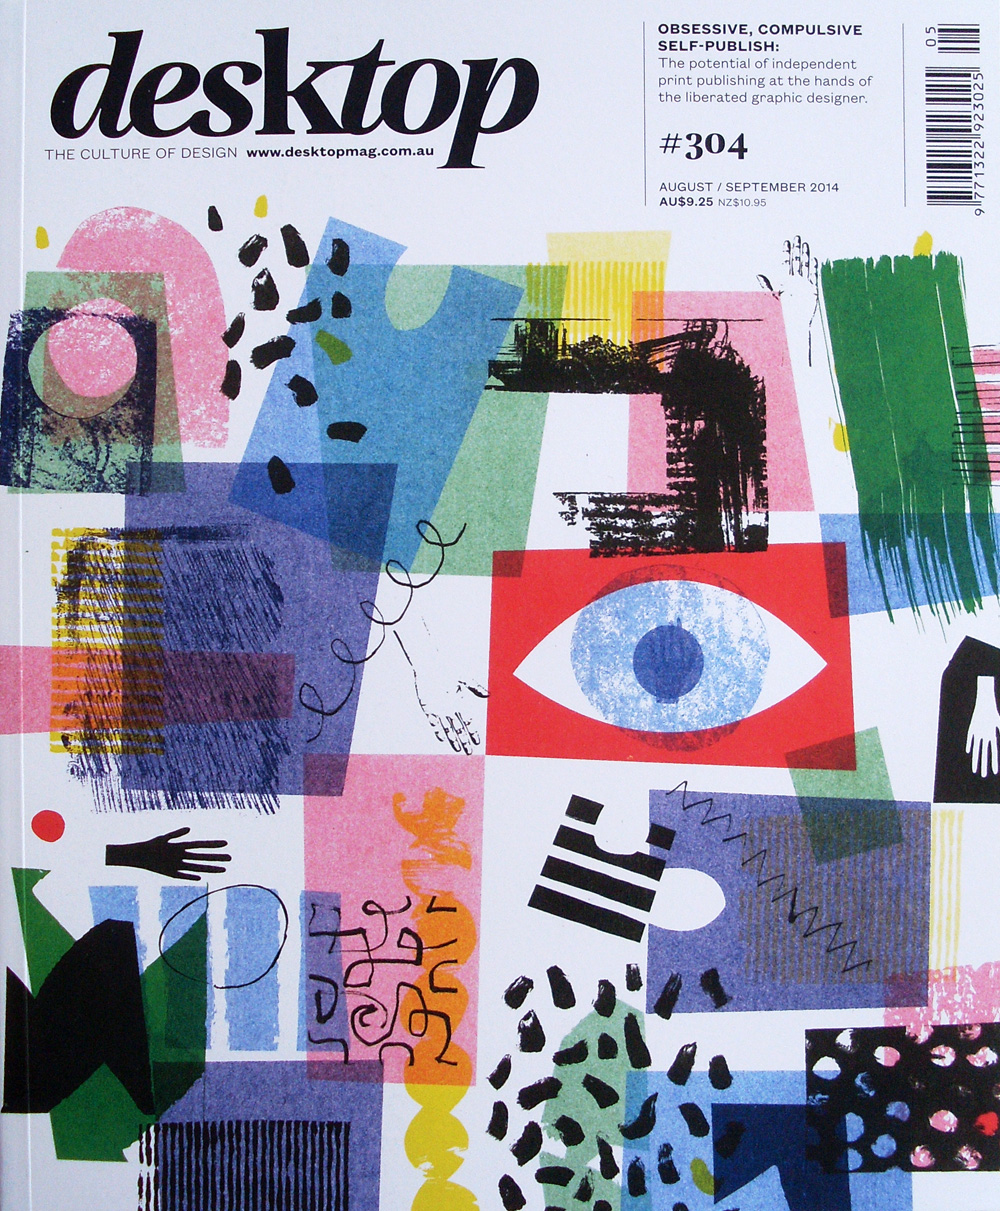 Cover for the Australian Graphic design magazine Desktop